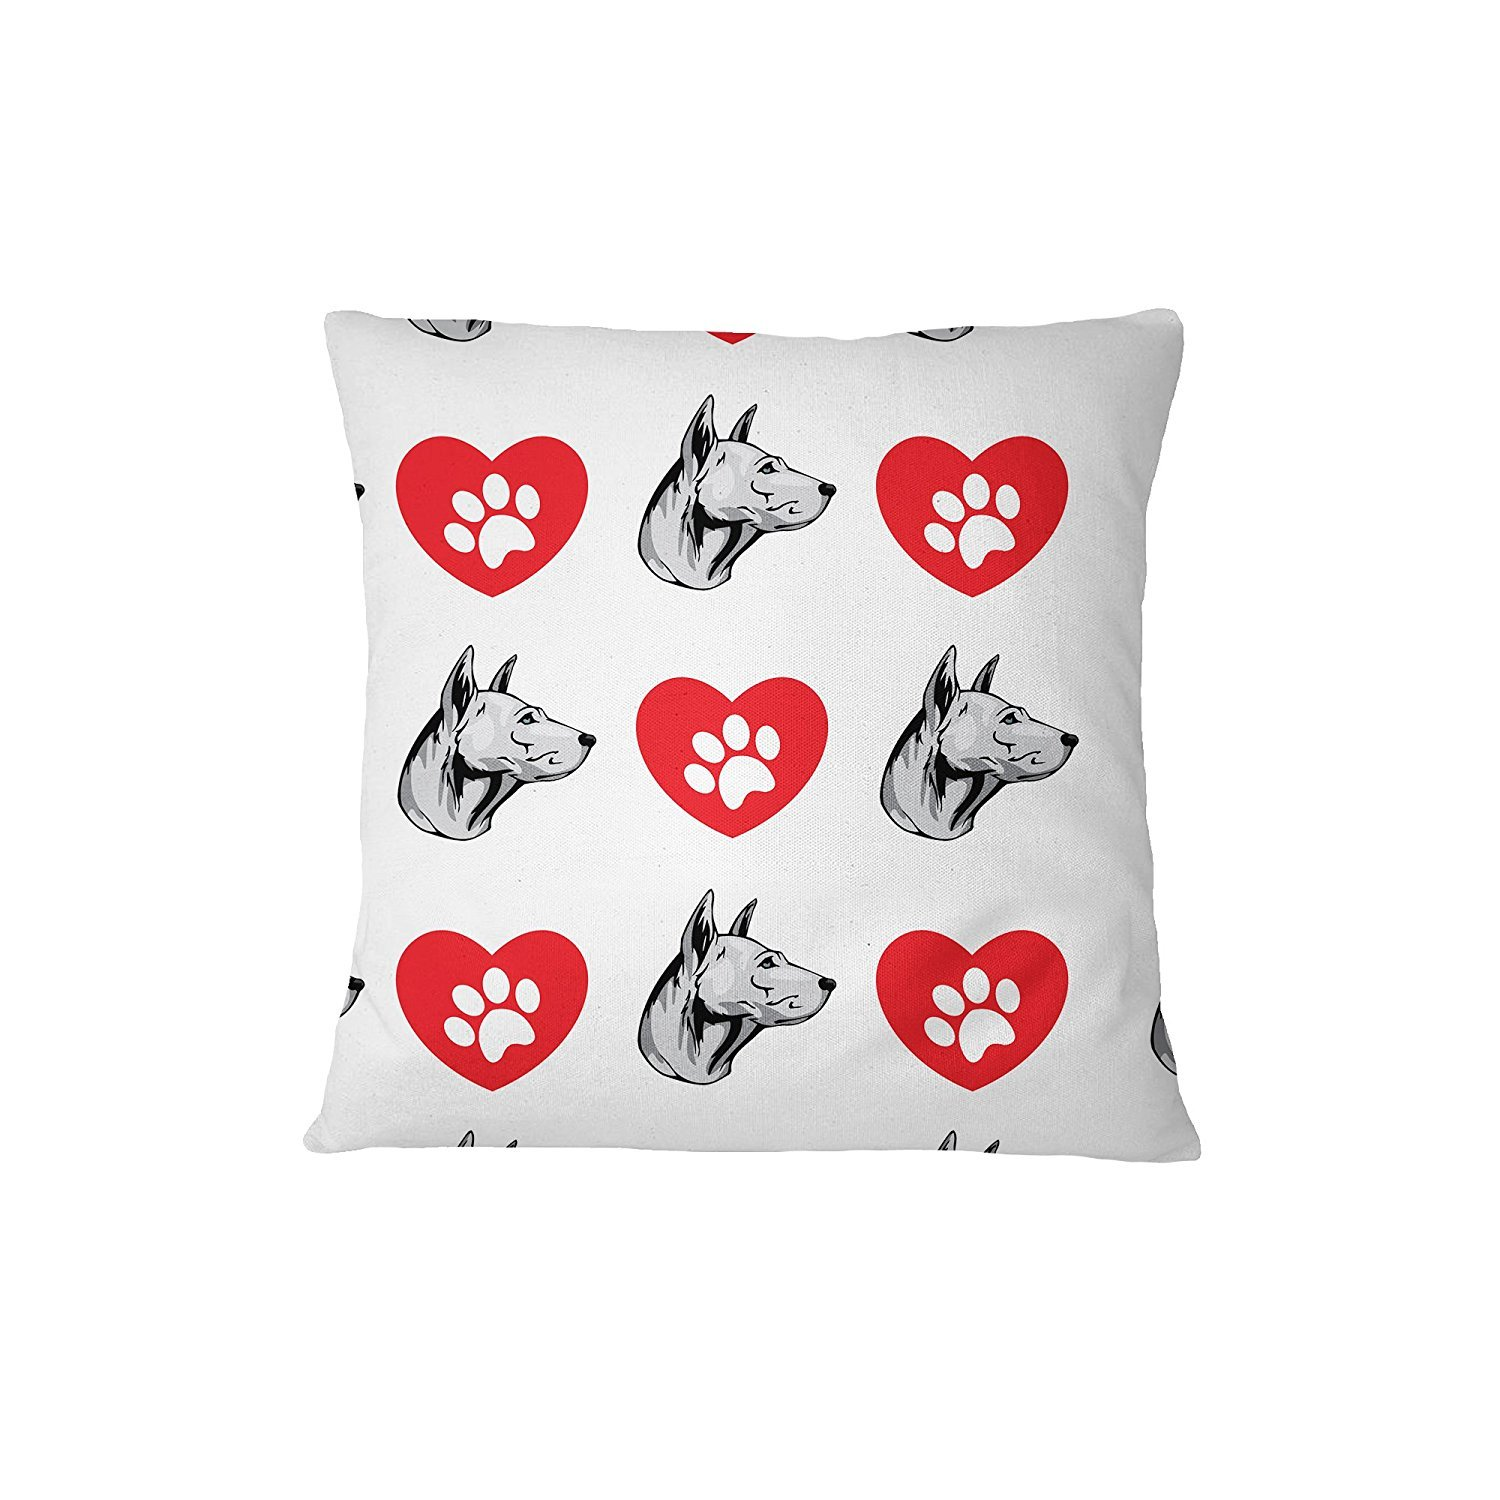 Thai Ridgeback Dog Heart Paws Sofa Bed Home Decor Pillow Cover Pillow & Cover Set ArtsLifes